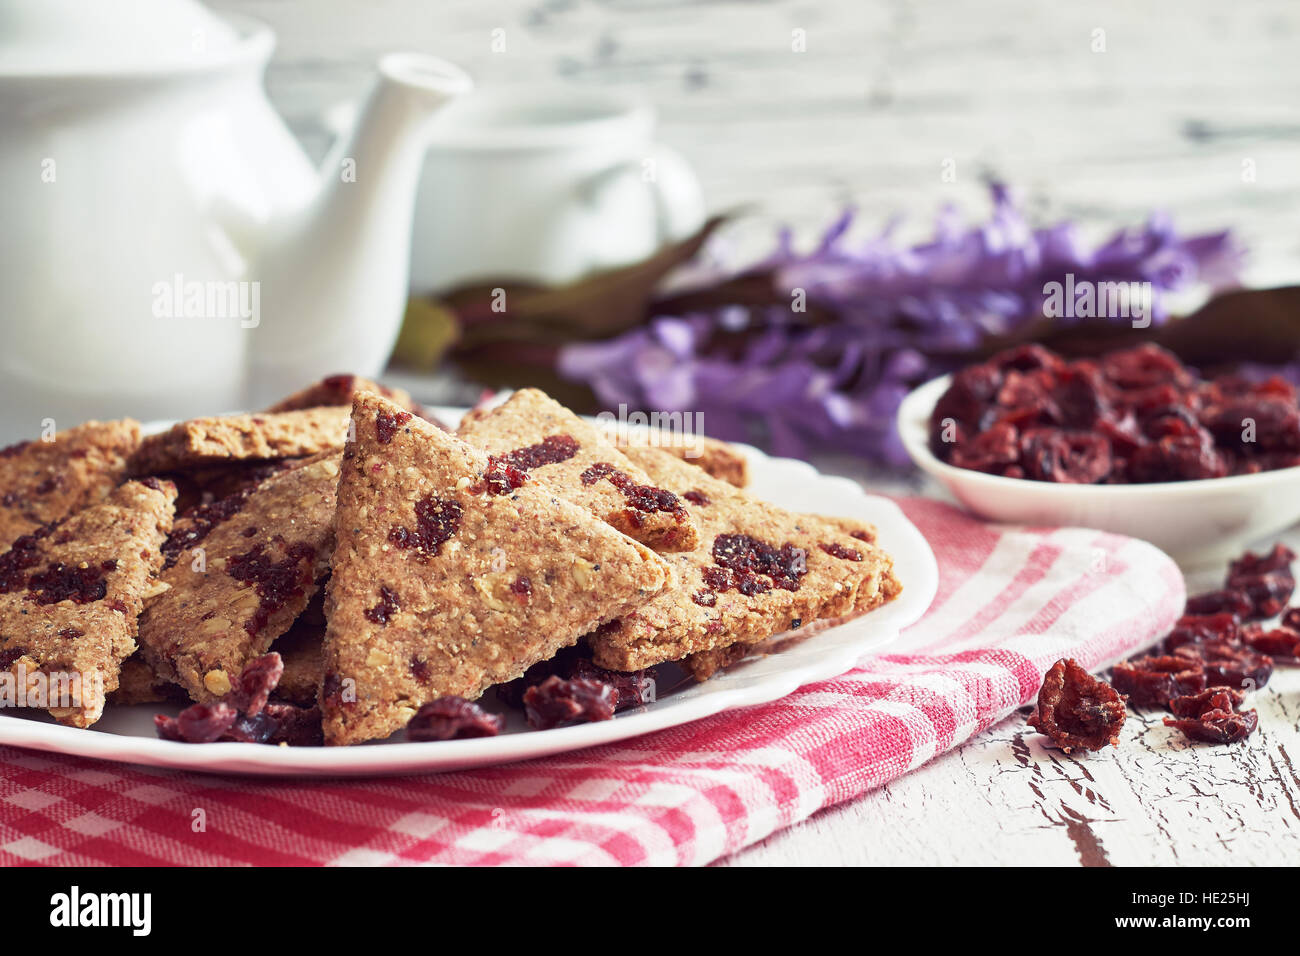 Whole wheat cookies with dried cranberries on white rustic wooden background - Stock Image